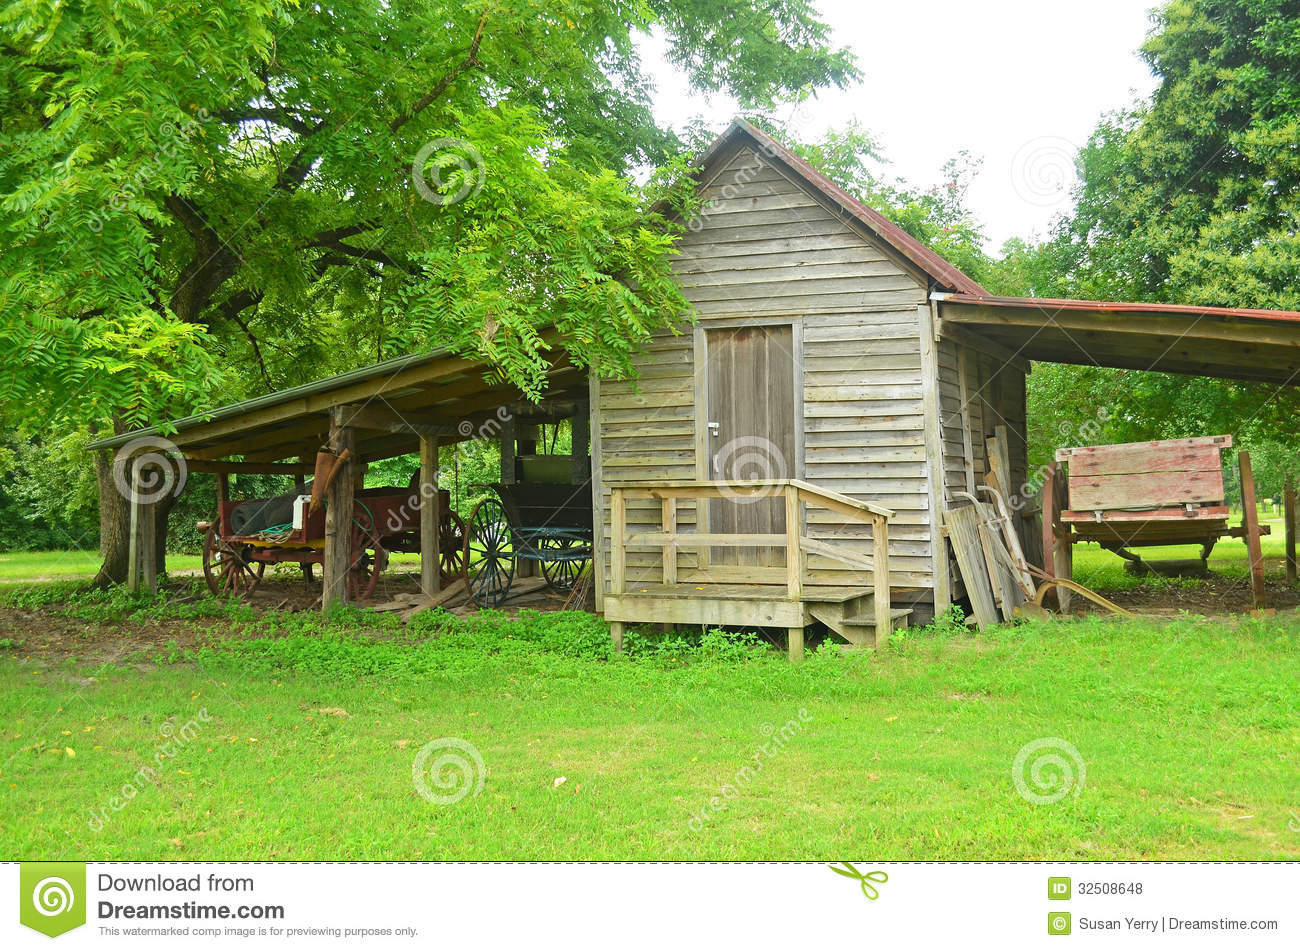 Old Wood Shed Antique Wagons Horse Carriage Royalty Free Stock Photos - Image: 32508648